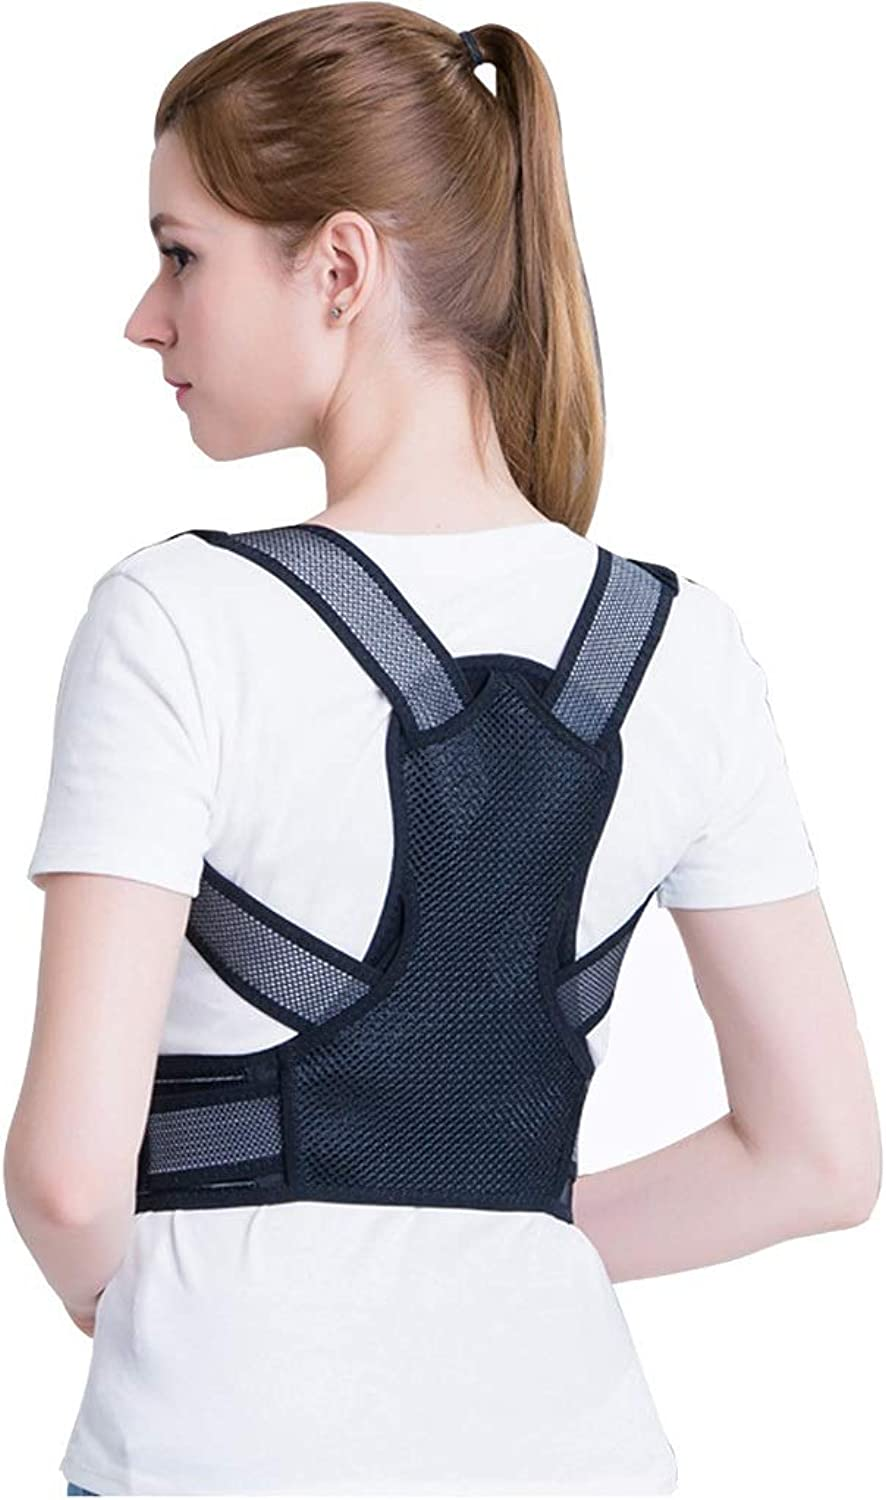 Back Straightener Back Stabilizer Moderate Back Relief Chronic Back Pain Physical Therapy Posture Support Back and Shoulder Pain Support Male Or Female